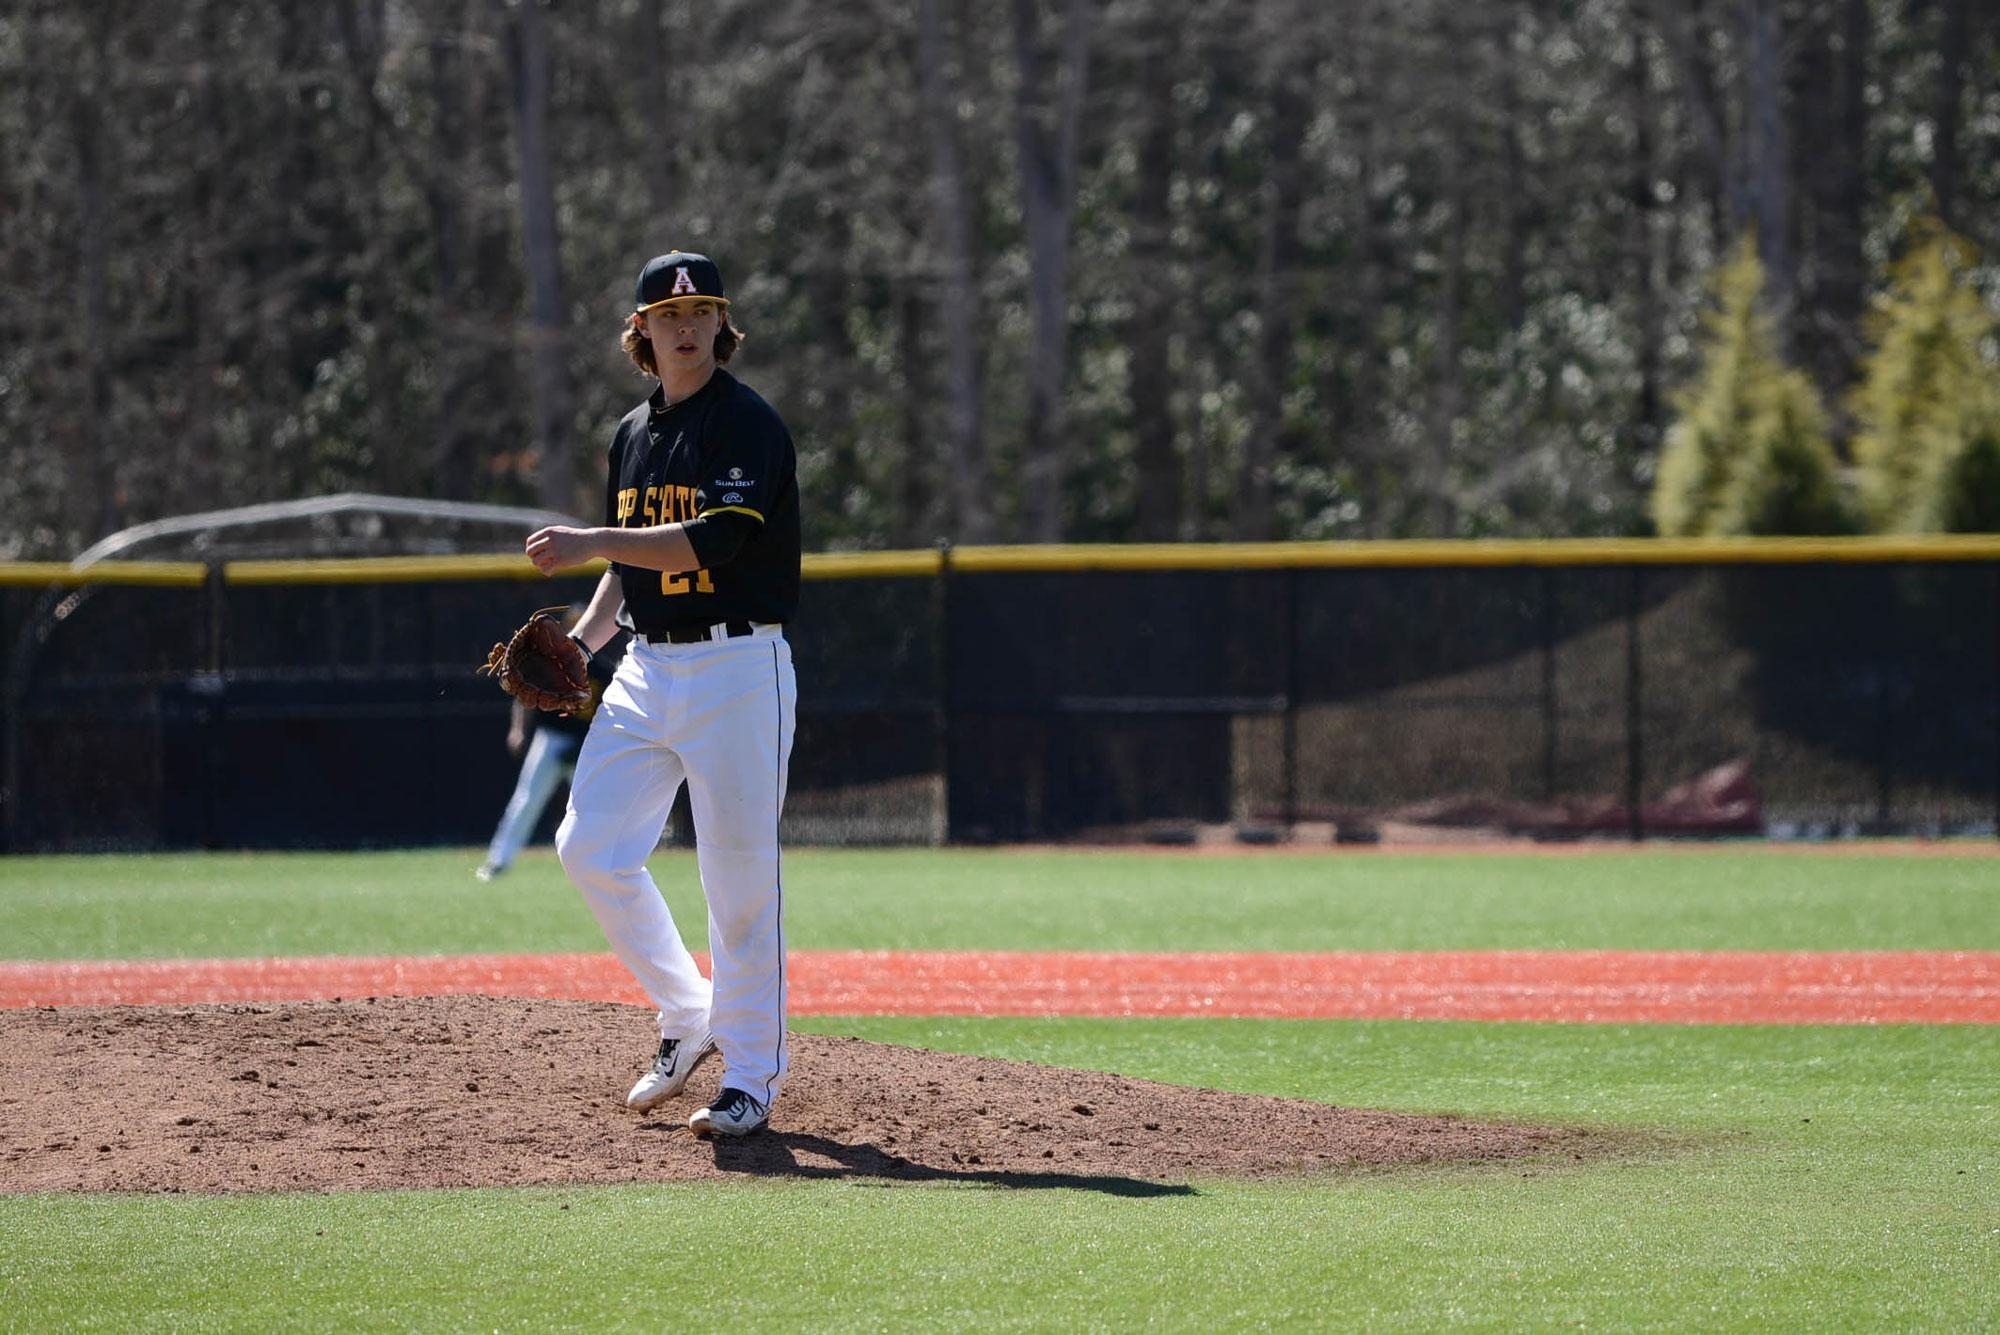 Sophomore pitcher Colin Schmid get ready to pitch the during the home game against the Quinnipiac Bobcats.